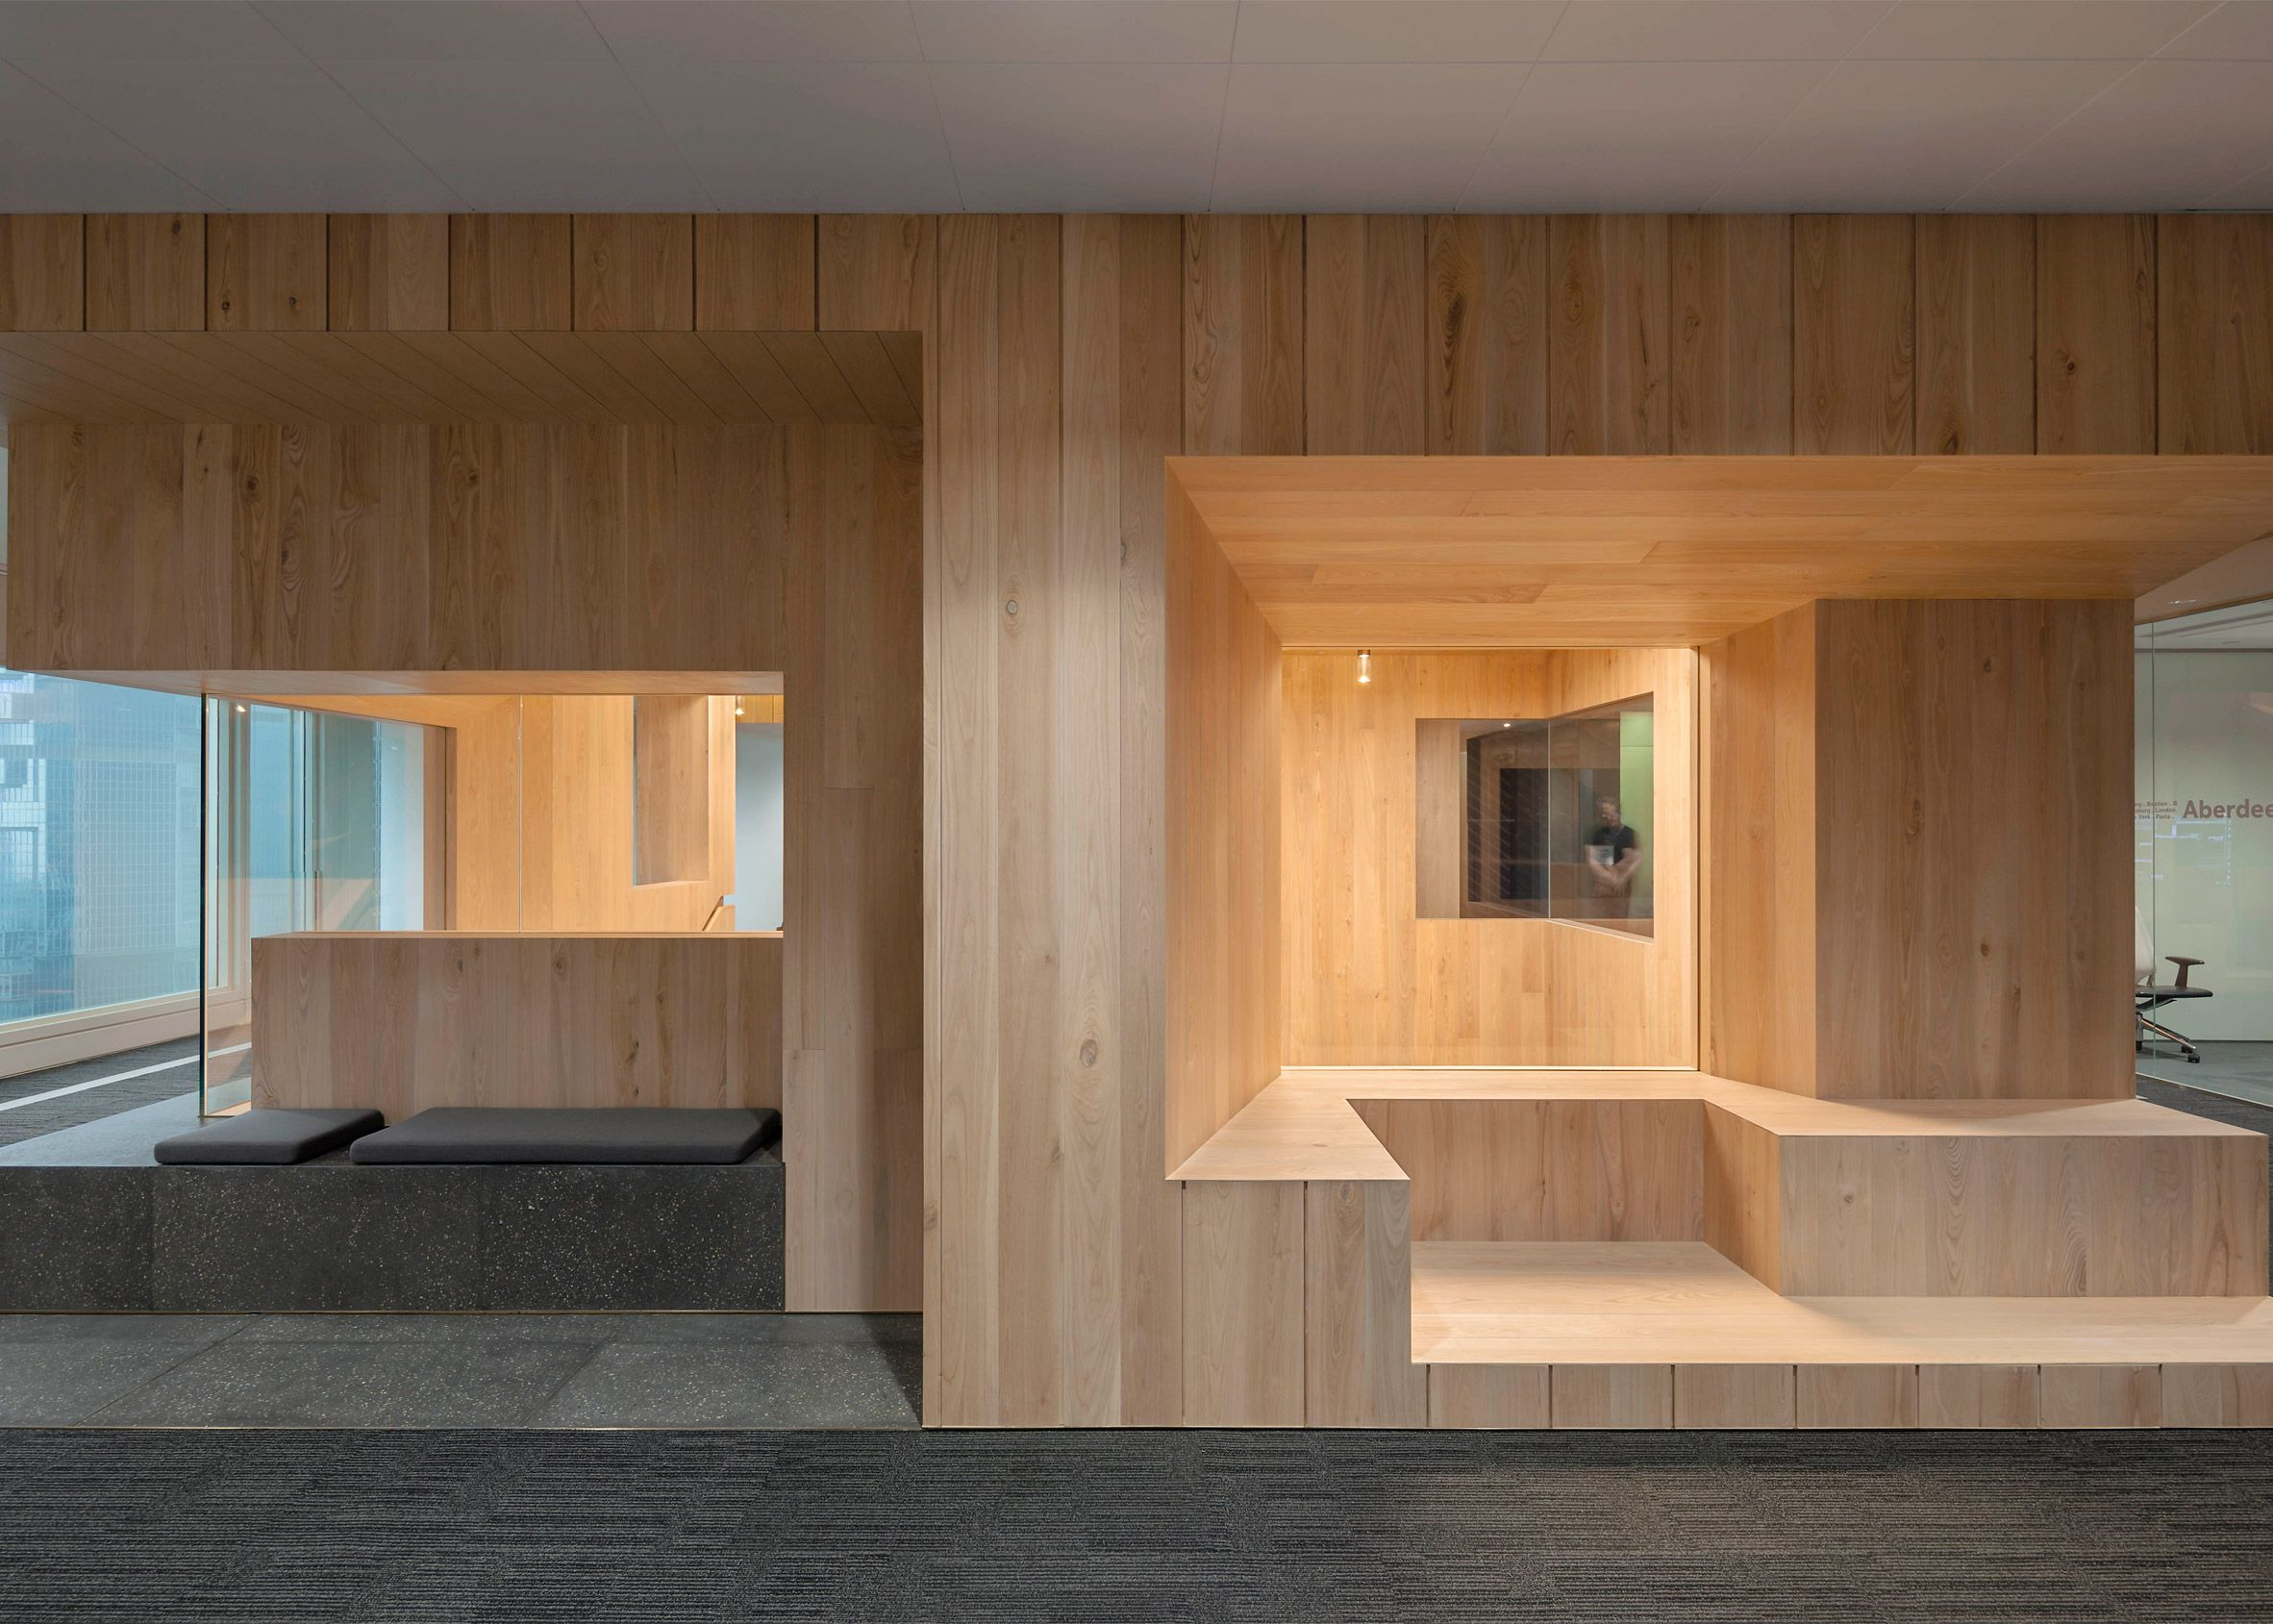 office space in hong kong. Image 25 Of 34 From Gallery Bloomberg Hong Kong Office / Neri\u0026Hu Design And Research Office. Photograph By Space In